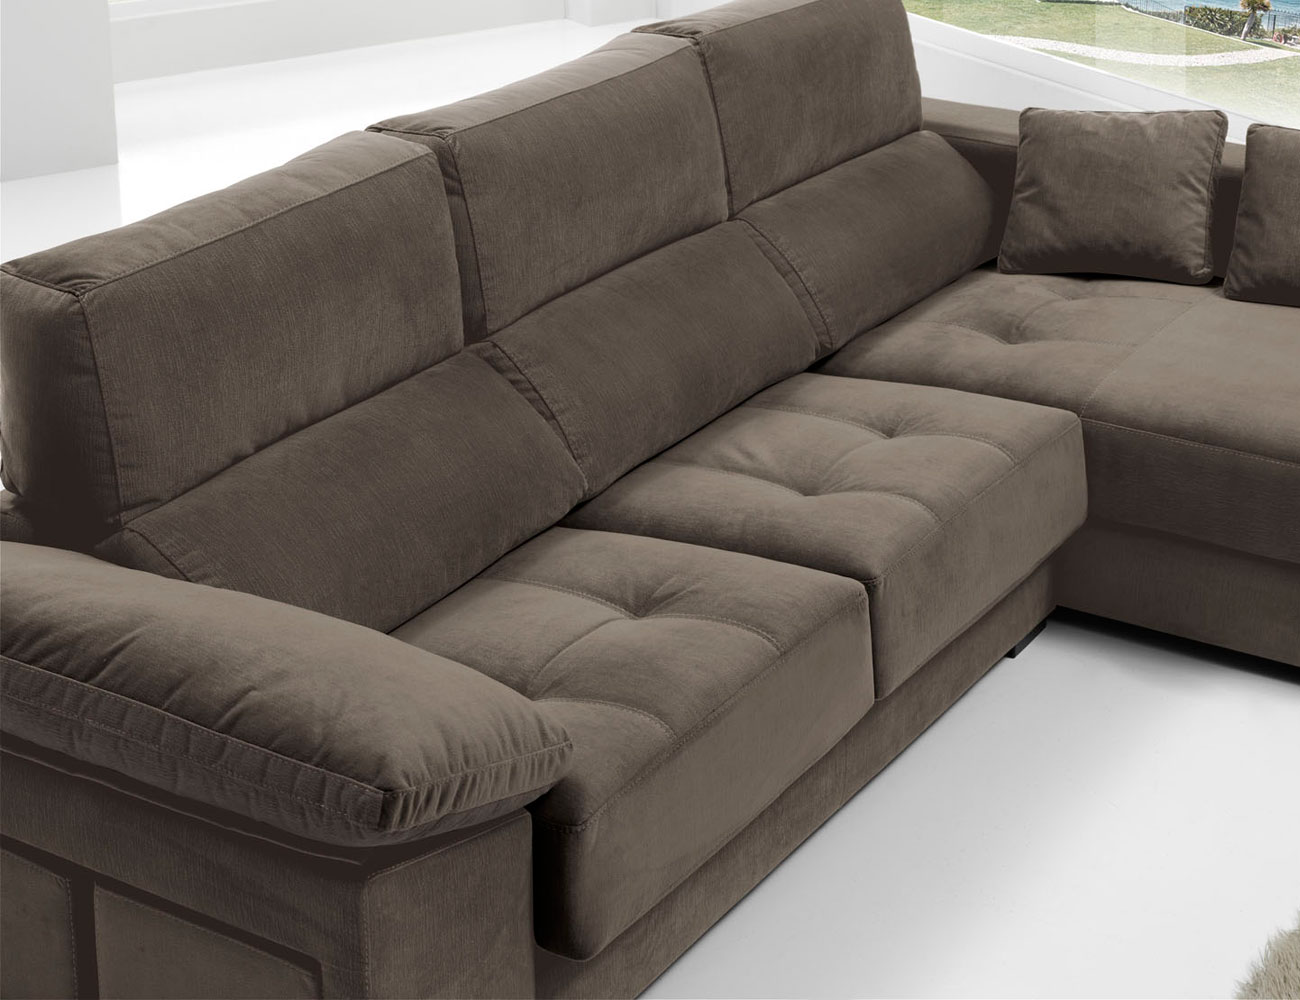 Sofa chaiselongue anti manchas bering pouf 223